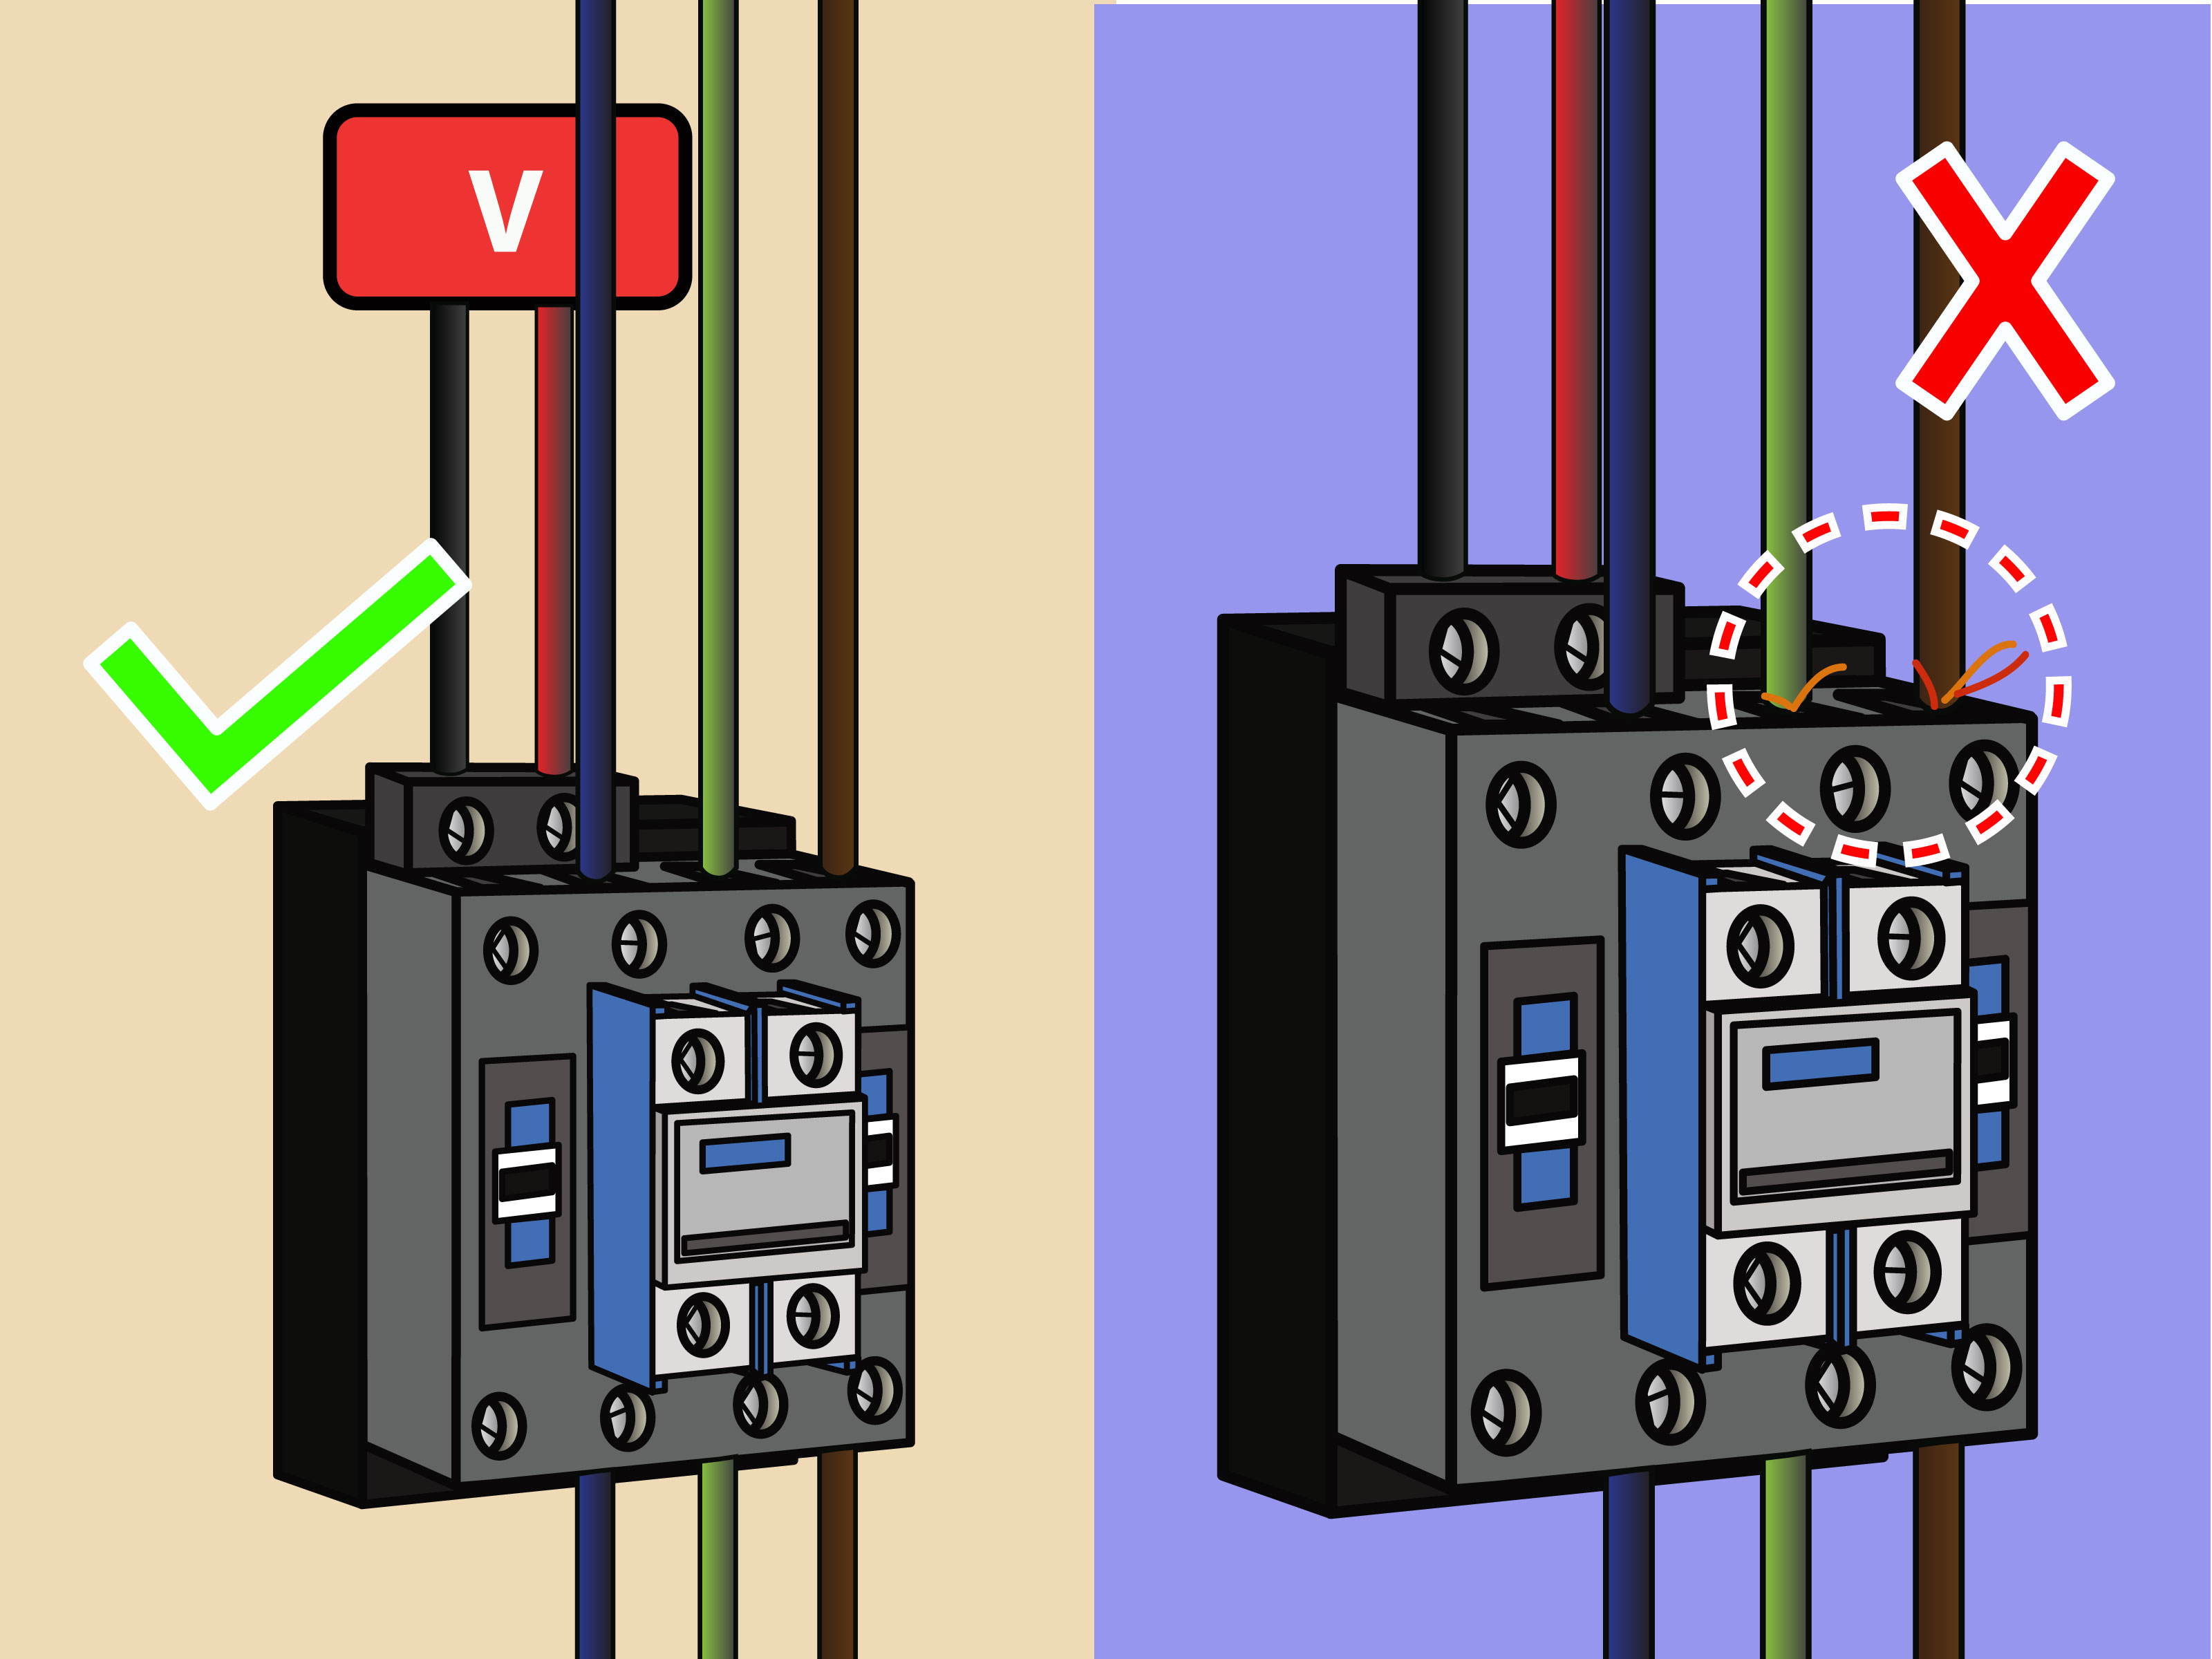 3 wire thermostat wiring diagram club cart gas how to a contactor 8 steps with pictures wikihow